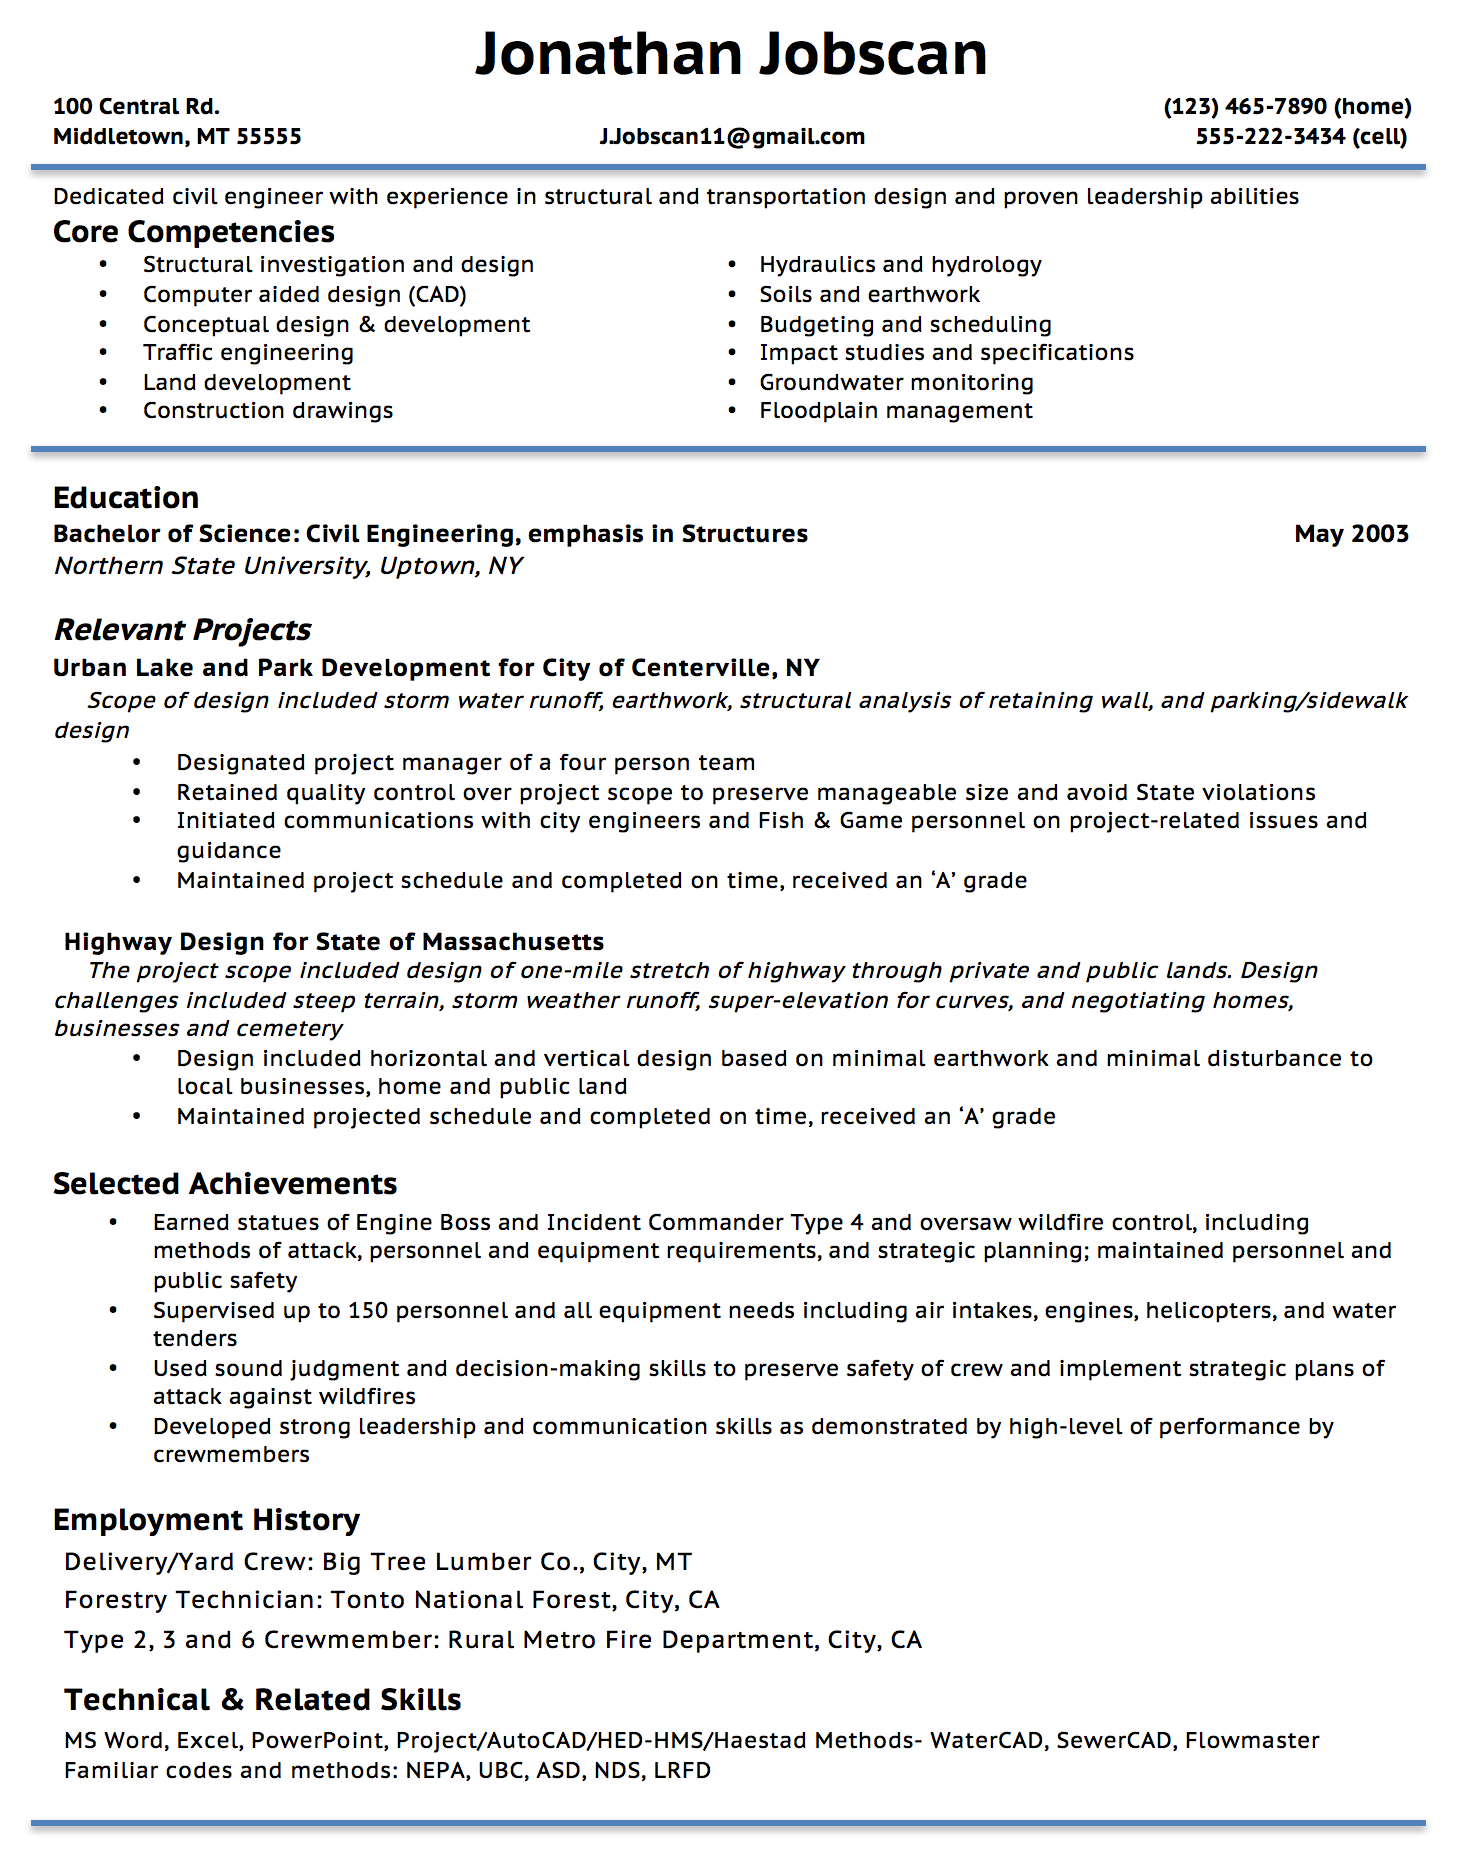 Opposenewapstandardsus  Picturesque Resume Writing Guide  Jobscan With Fetching Example Of A Functional Resume Format With Awesome Professional Actor Resume Also Biomedical Engineer Resume In Addition Interest In Resume And How To Write A Good Cover Letter For A Resume As Well As Examples Of Basic Resumes Additionally Cashier Duties On Resume From Jobscanco With Opposenewapstandardsus  Fetching Resume Writing Guide  Jobscan With Awesome Example Of A Functional Resume Format And Picturesque Professional Actor Resume Also Biomedical Engineer Resume In Addition Interest In Resume From Jobscanco